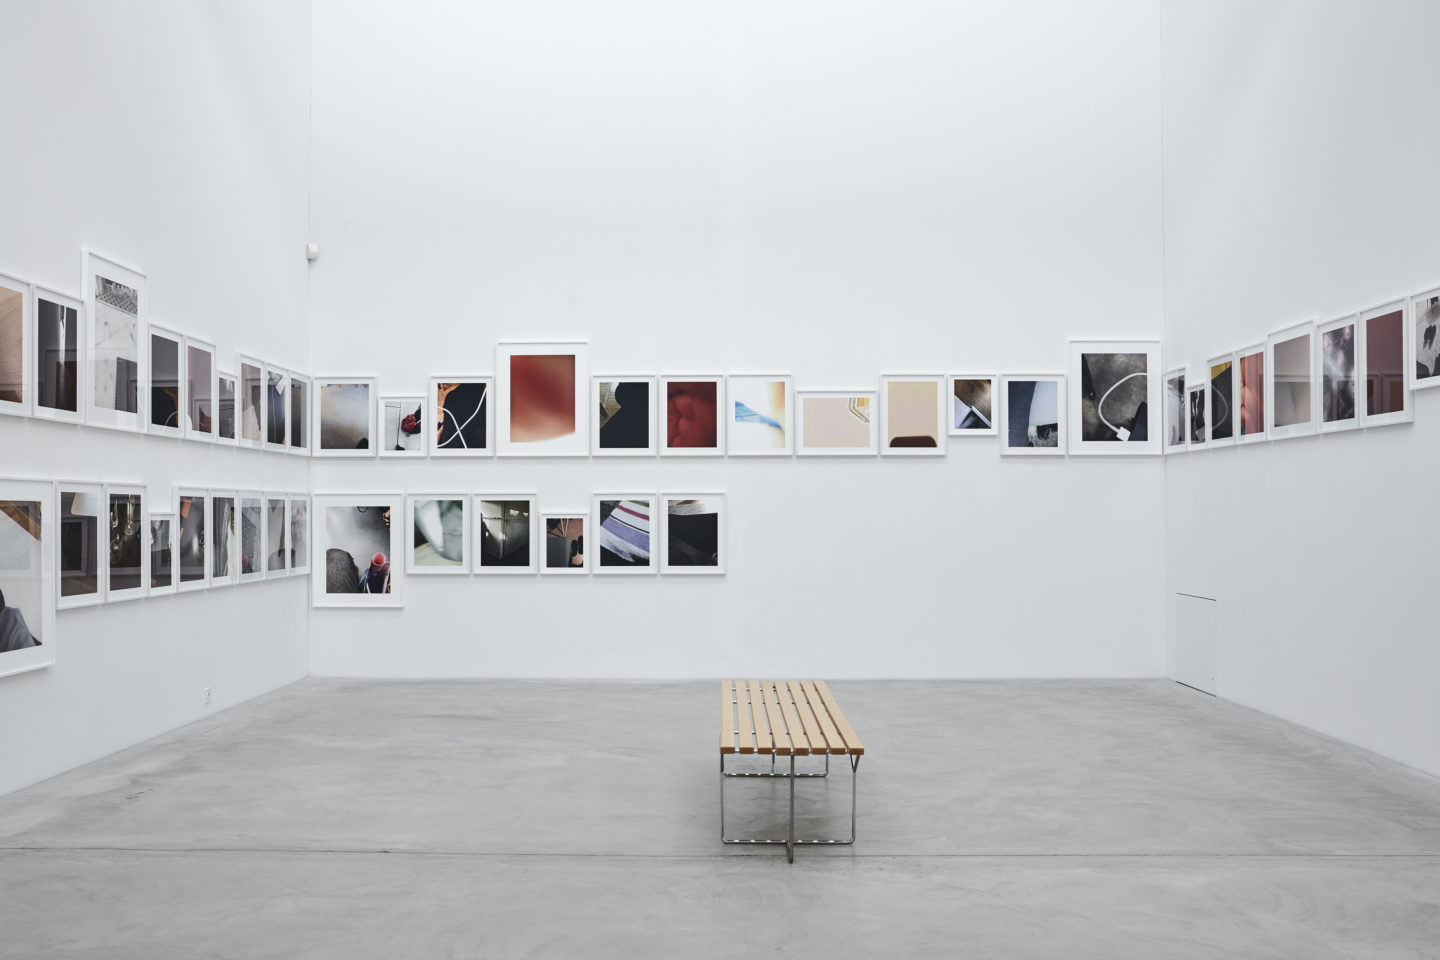 Exhibition View Karin Sander Soloshow «view on Call Shots, 2013-18» at Kunstmuseum Winterthur / Photo: Lucas Ziegler / Courtesy: the artist and Galerie nächst St. Stephan